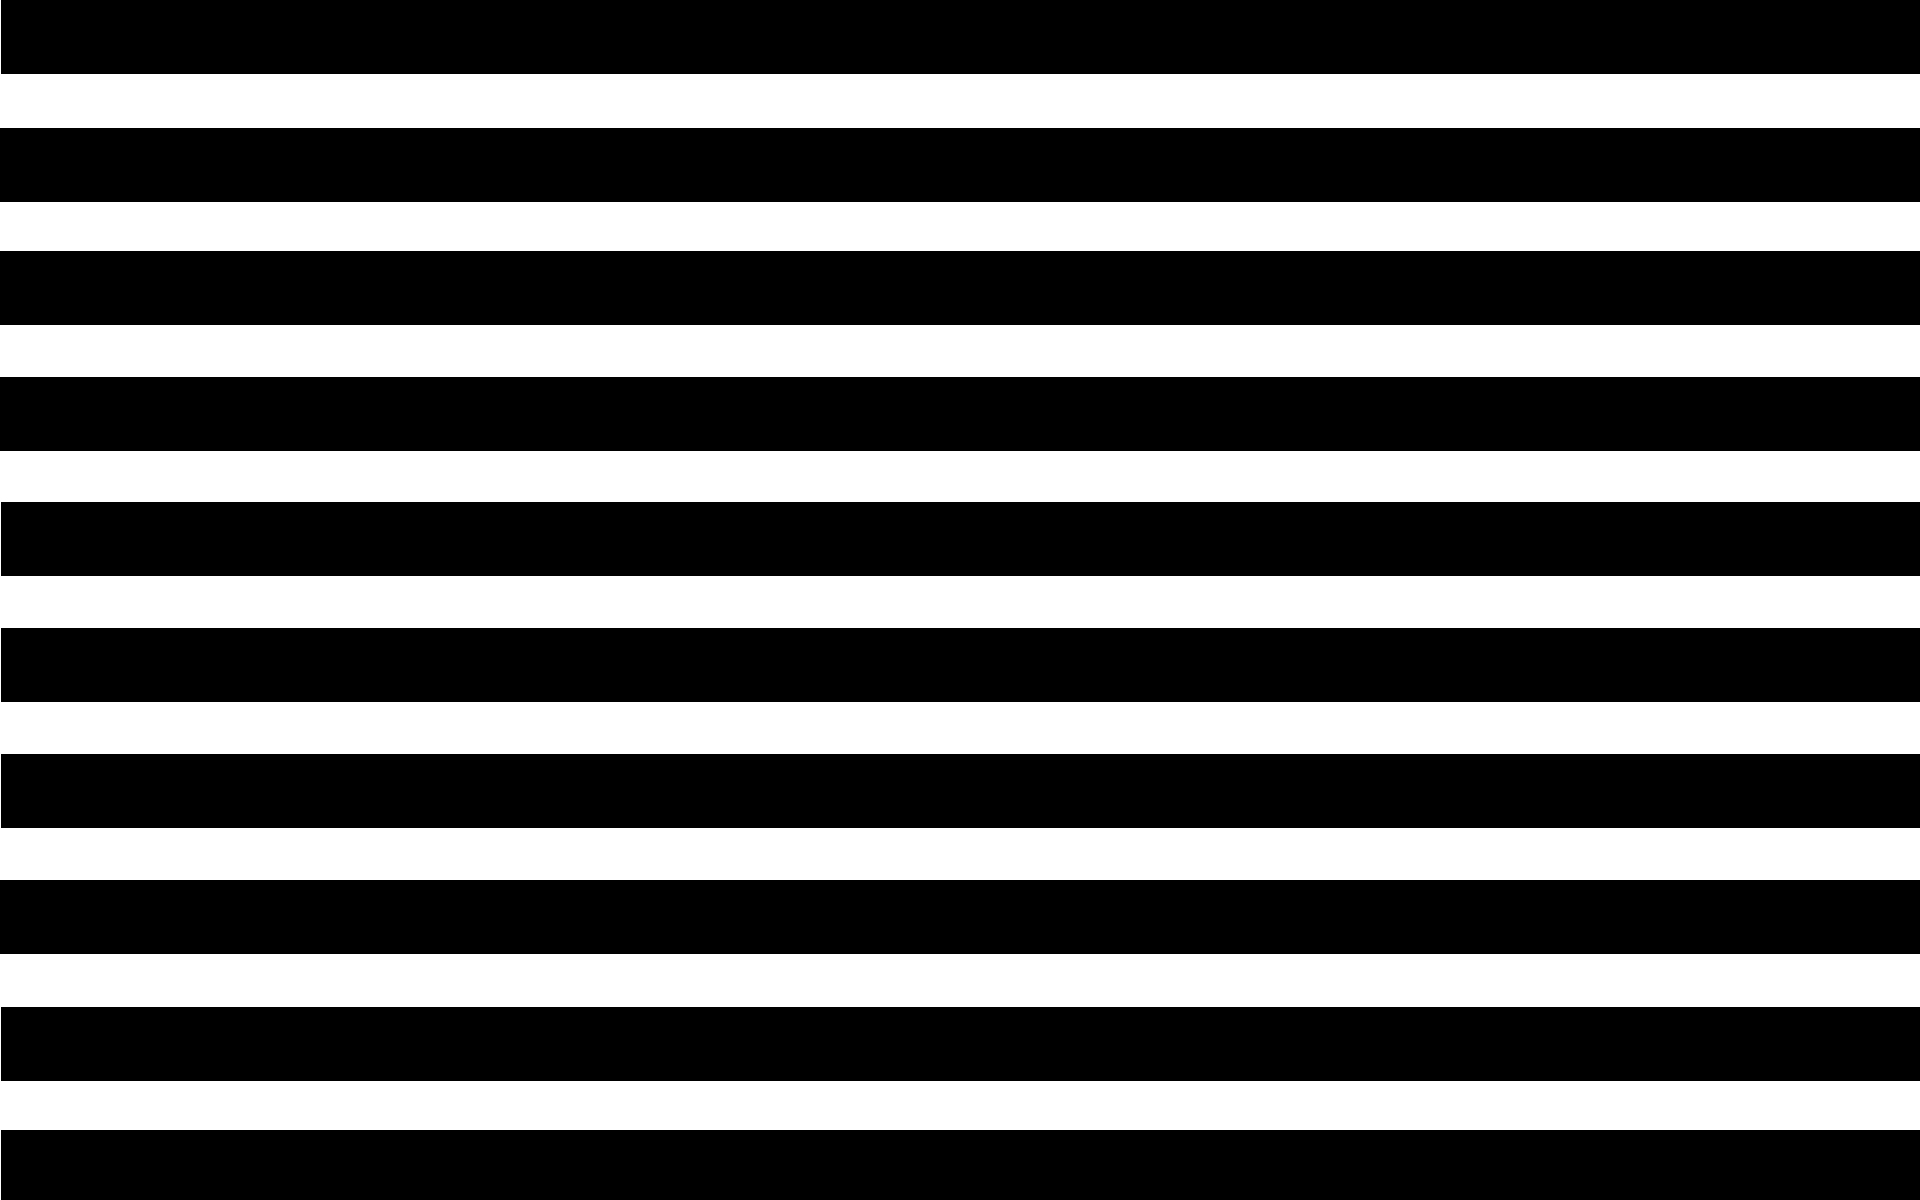 black and white stripes1jpg - photo #49